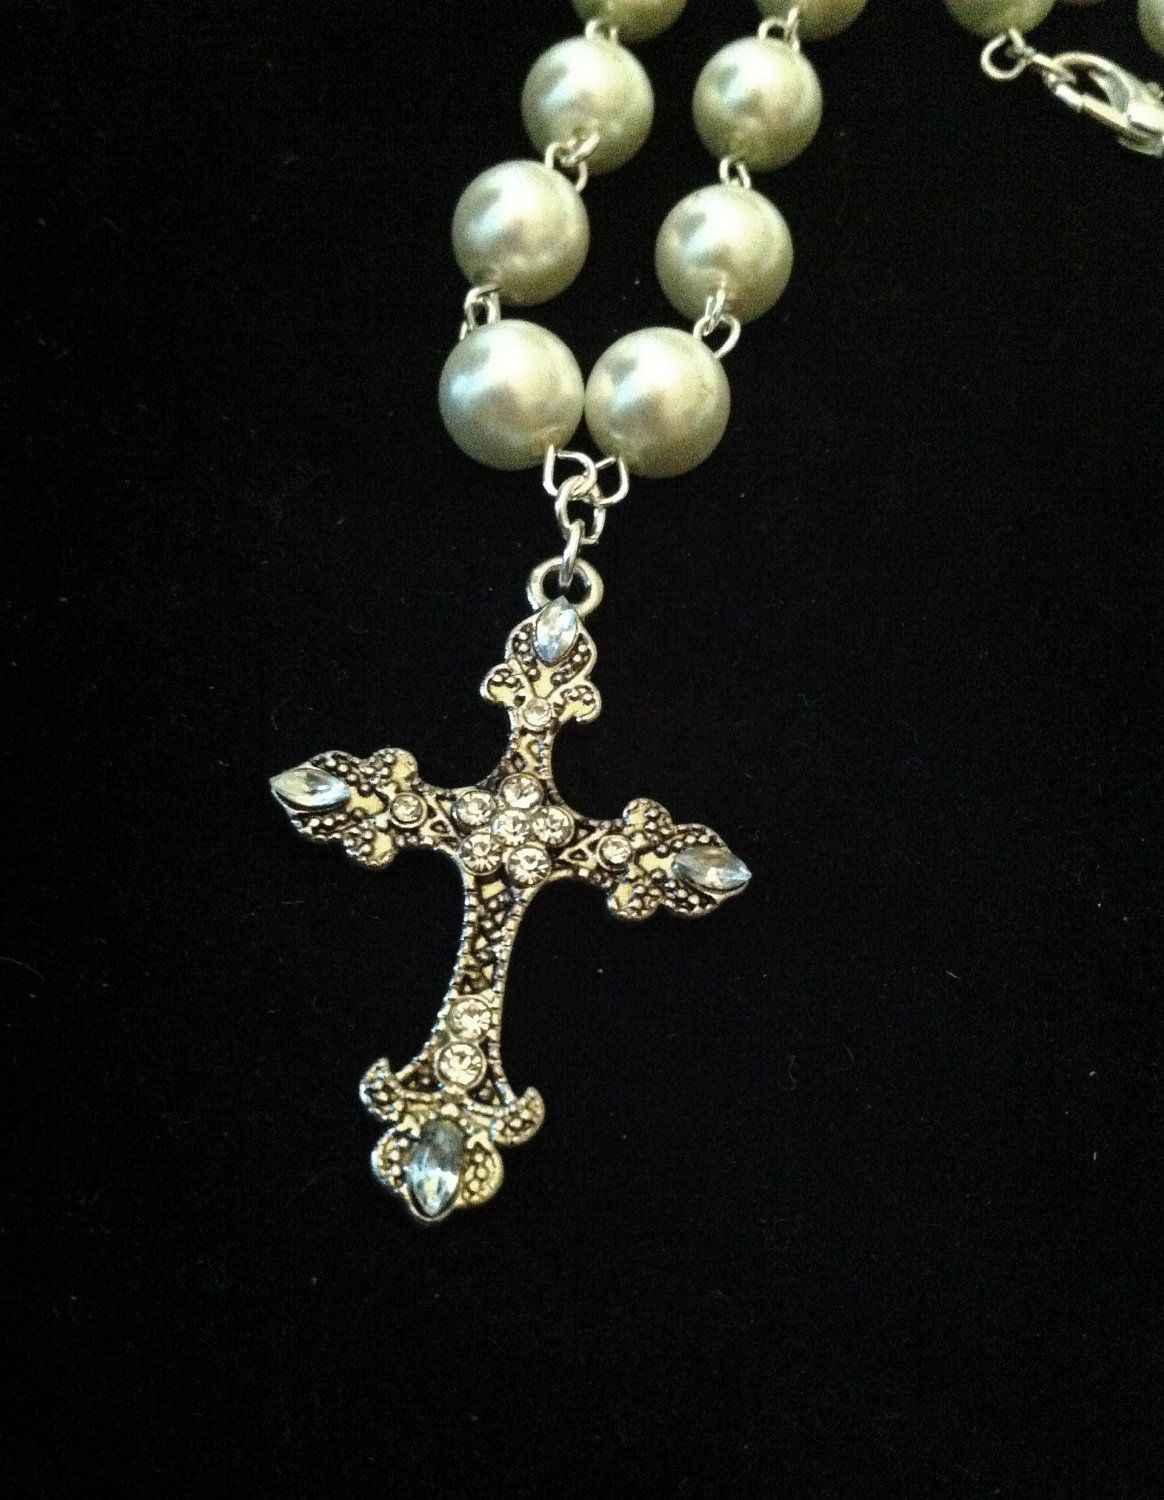 Wedding cross necklace pearl necklace with rhinestone cross pendant wedding cross necklace pearl necklace with rhinestone cross pendant first communion necklace 1043 3000 via etsy aloadofball